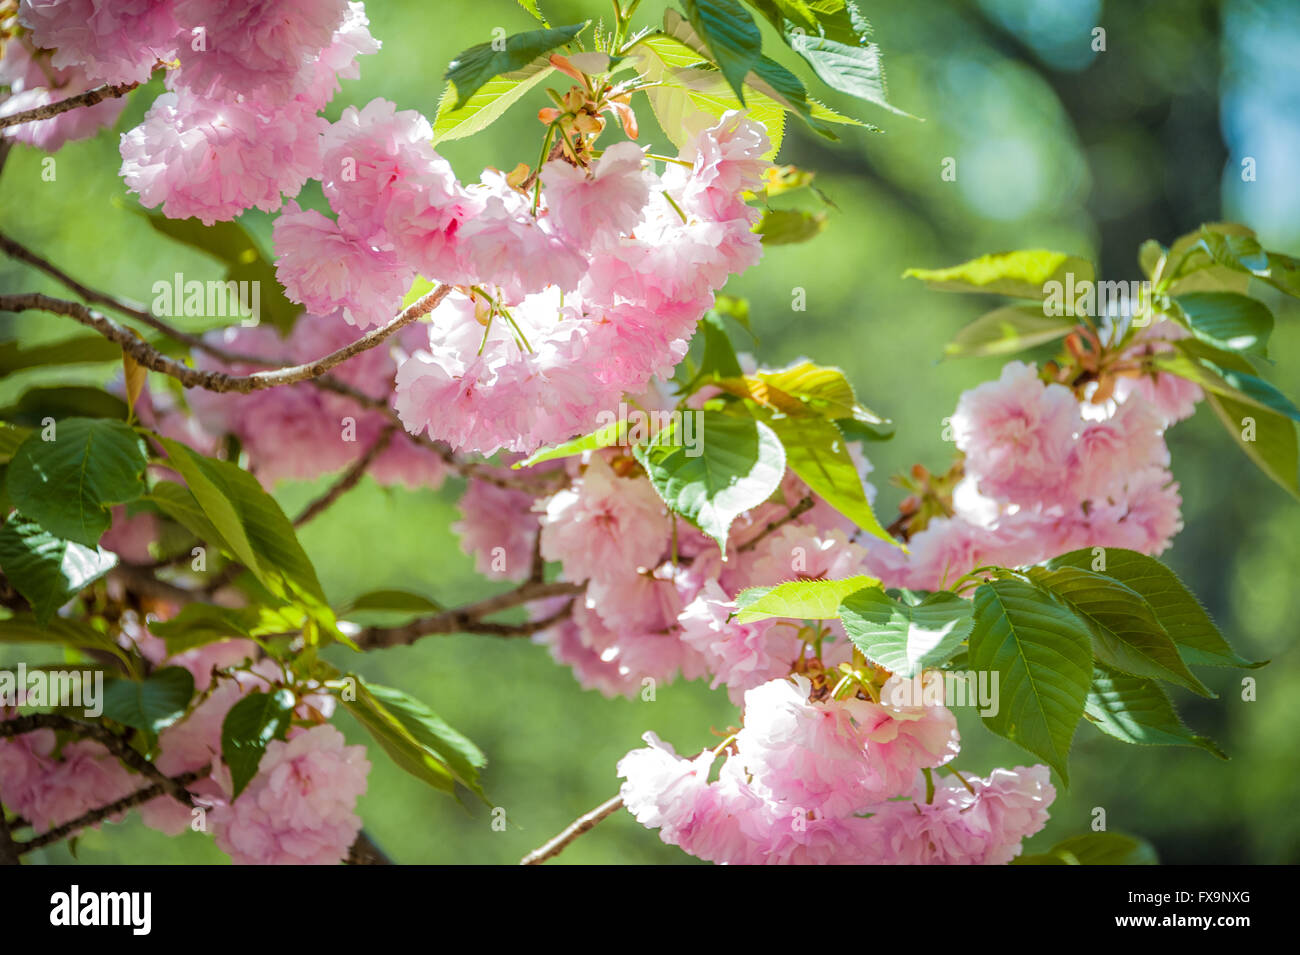 Pink, sunlit spring blossoms at Honor Heights Park in Muskogee, Oklahoma, USA. Stock Photo